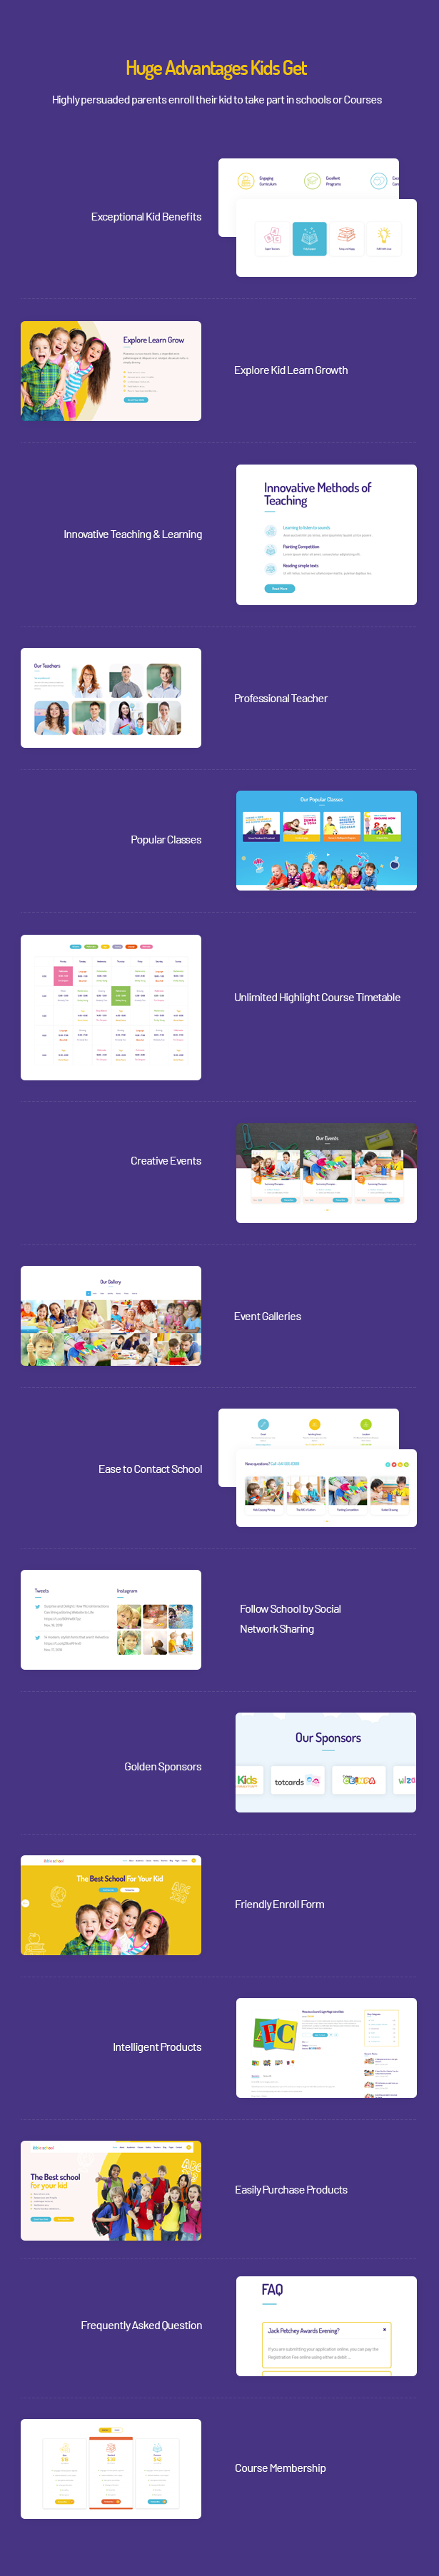 Ibble Education WordPress Theme with Huge Advantages for Kids